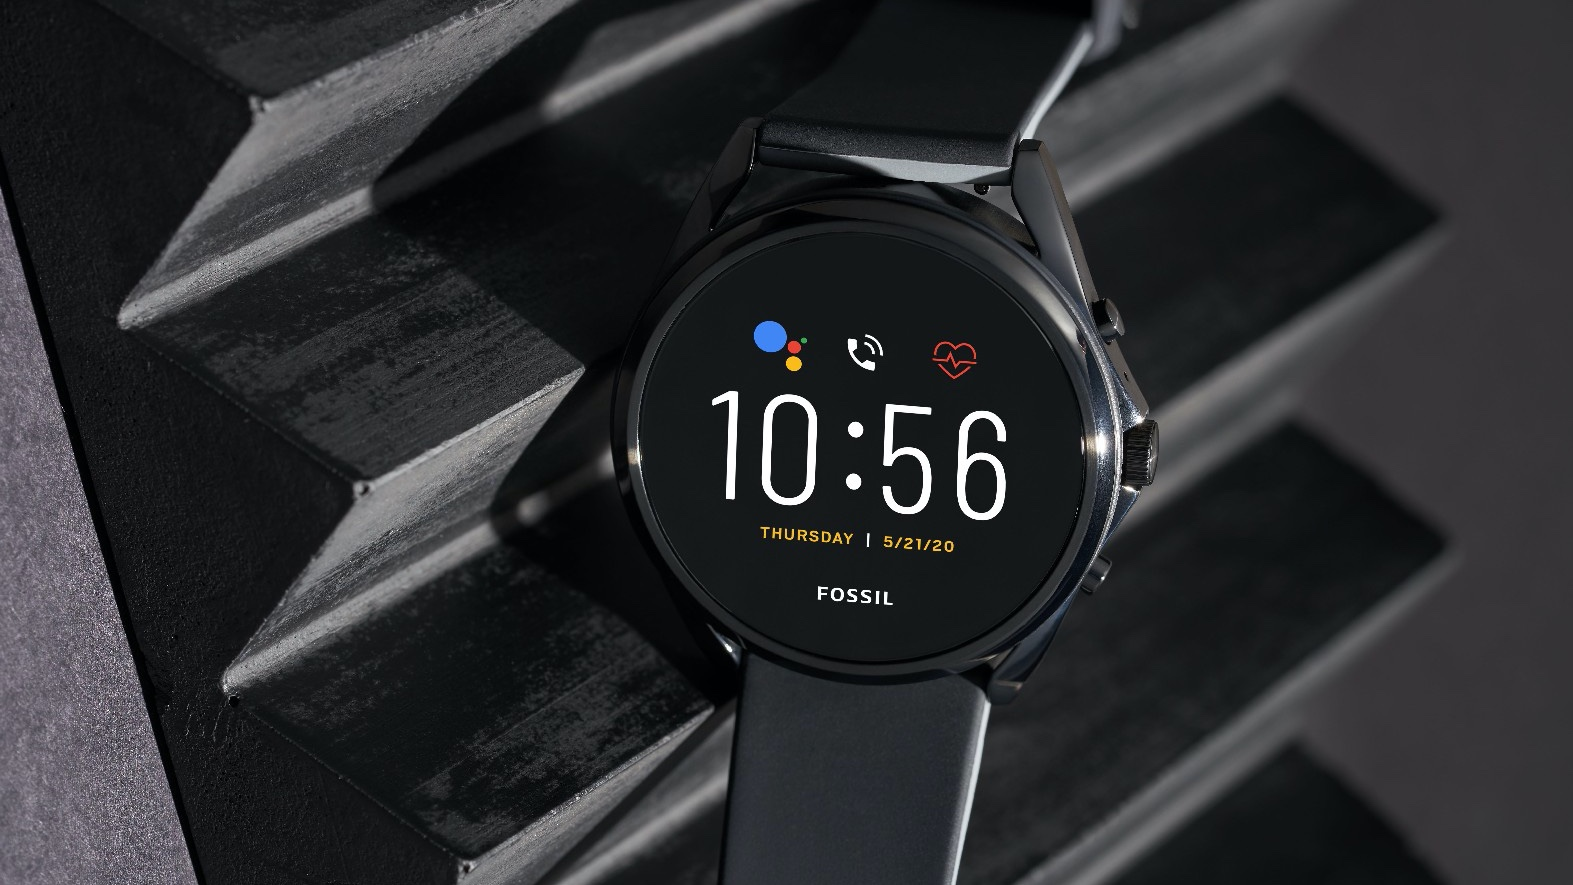 Fossil launches new LTE smartwatch